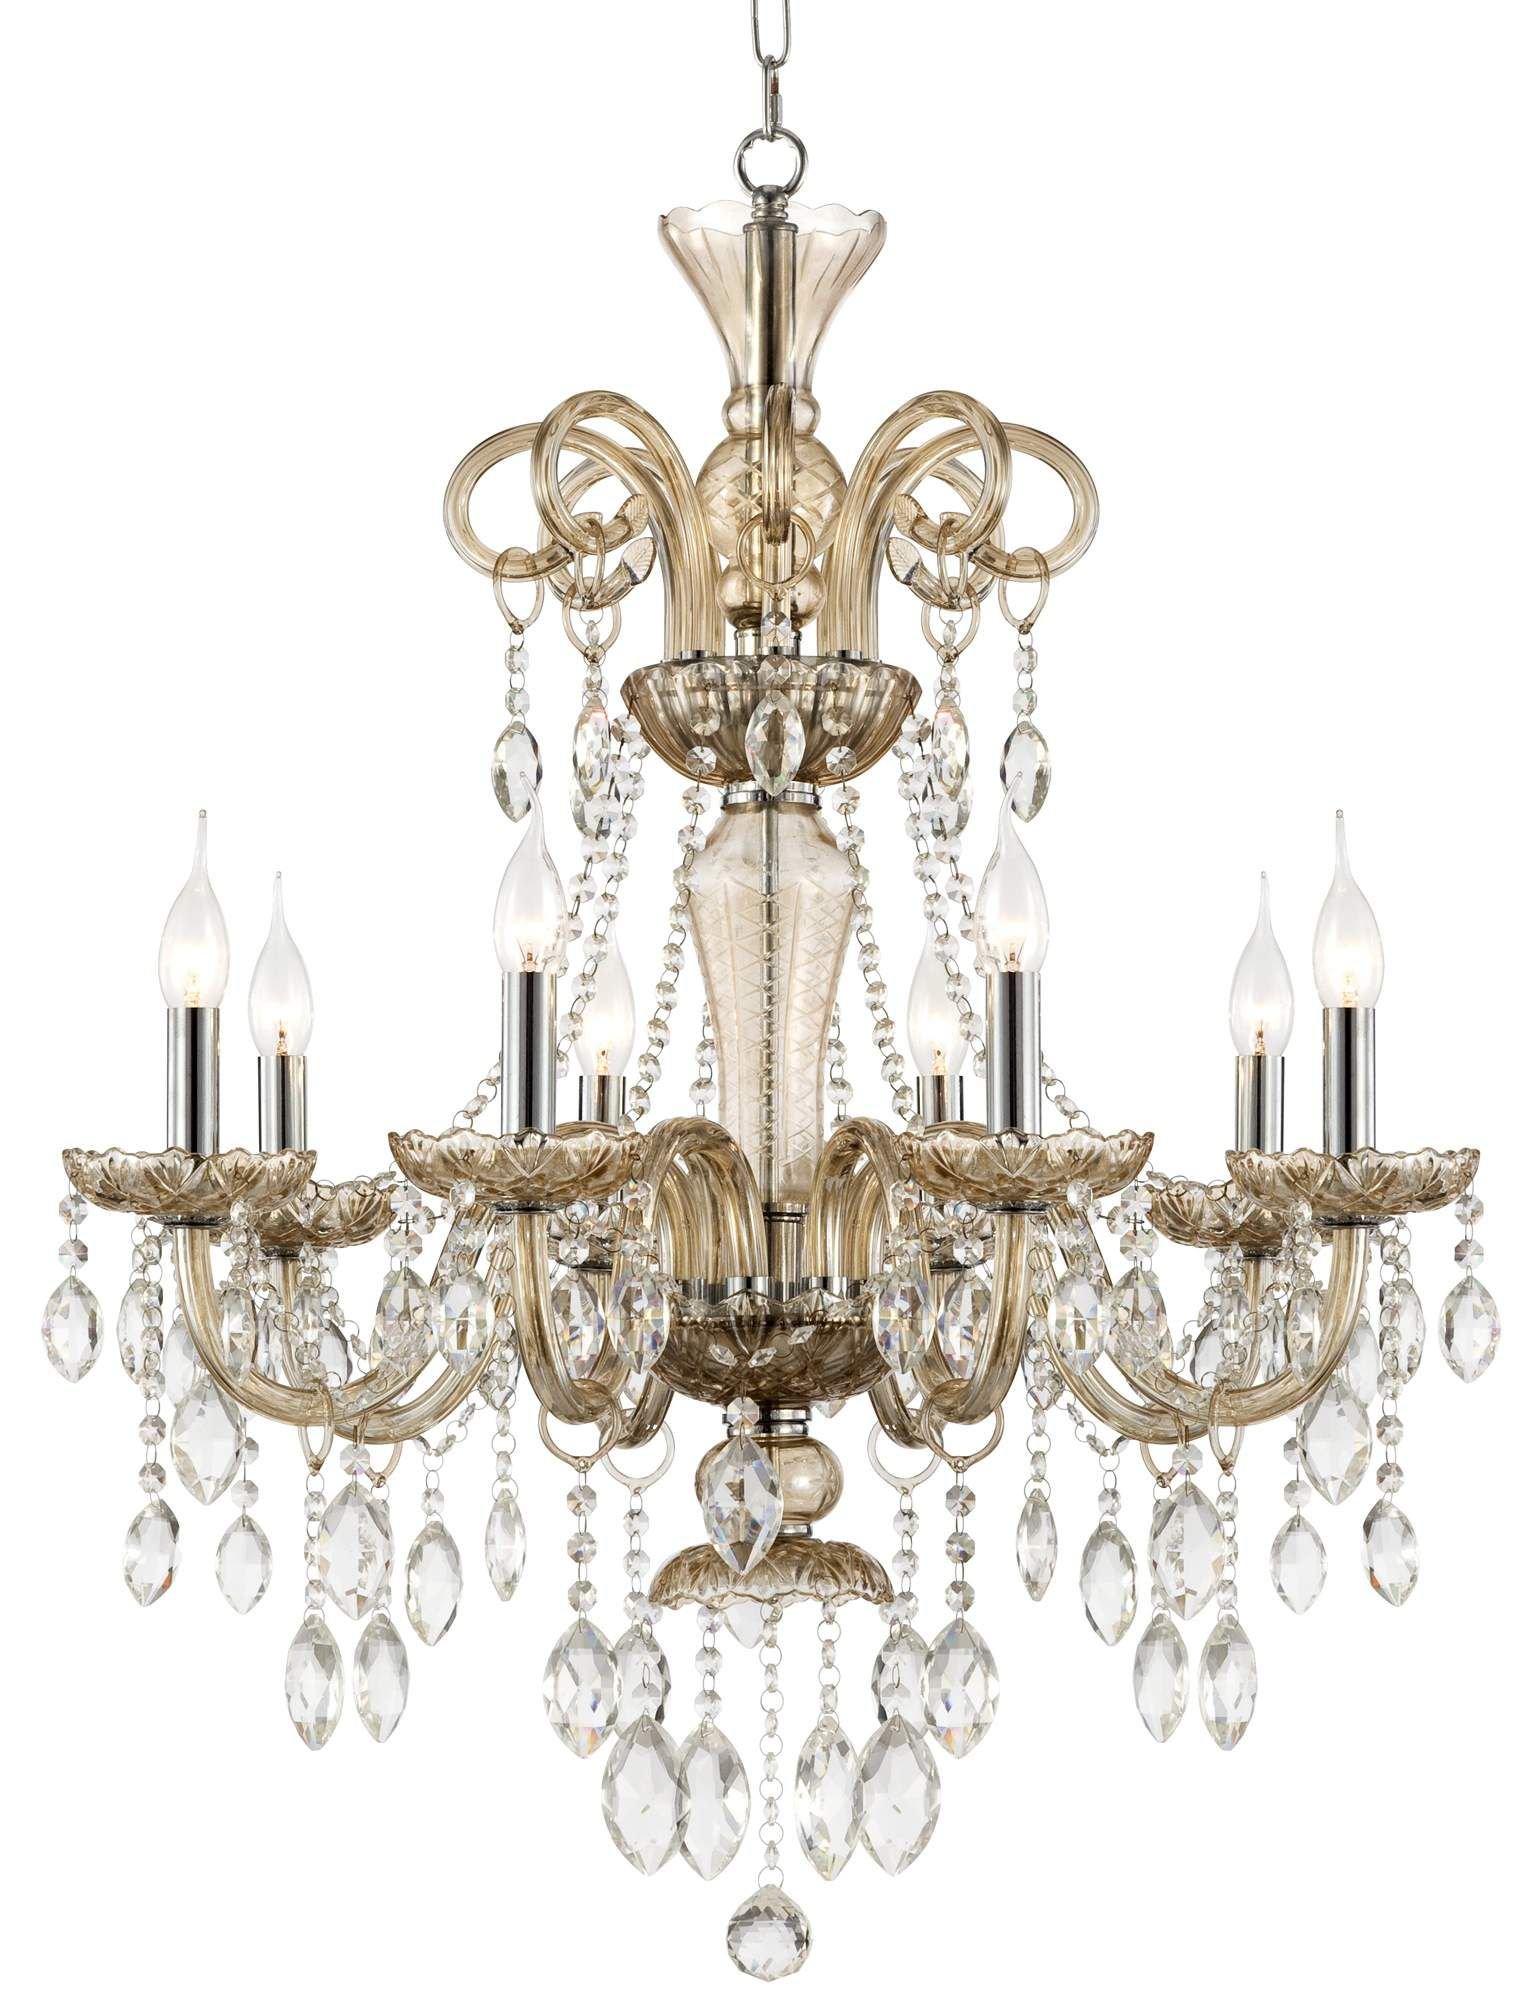 Traditional 28 wide 8 light crystal chandelier 55downingstreet traditional 28 wide 8 light crystal chandelier 55downingstreet arubaitofo Choice Image